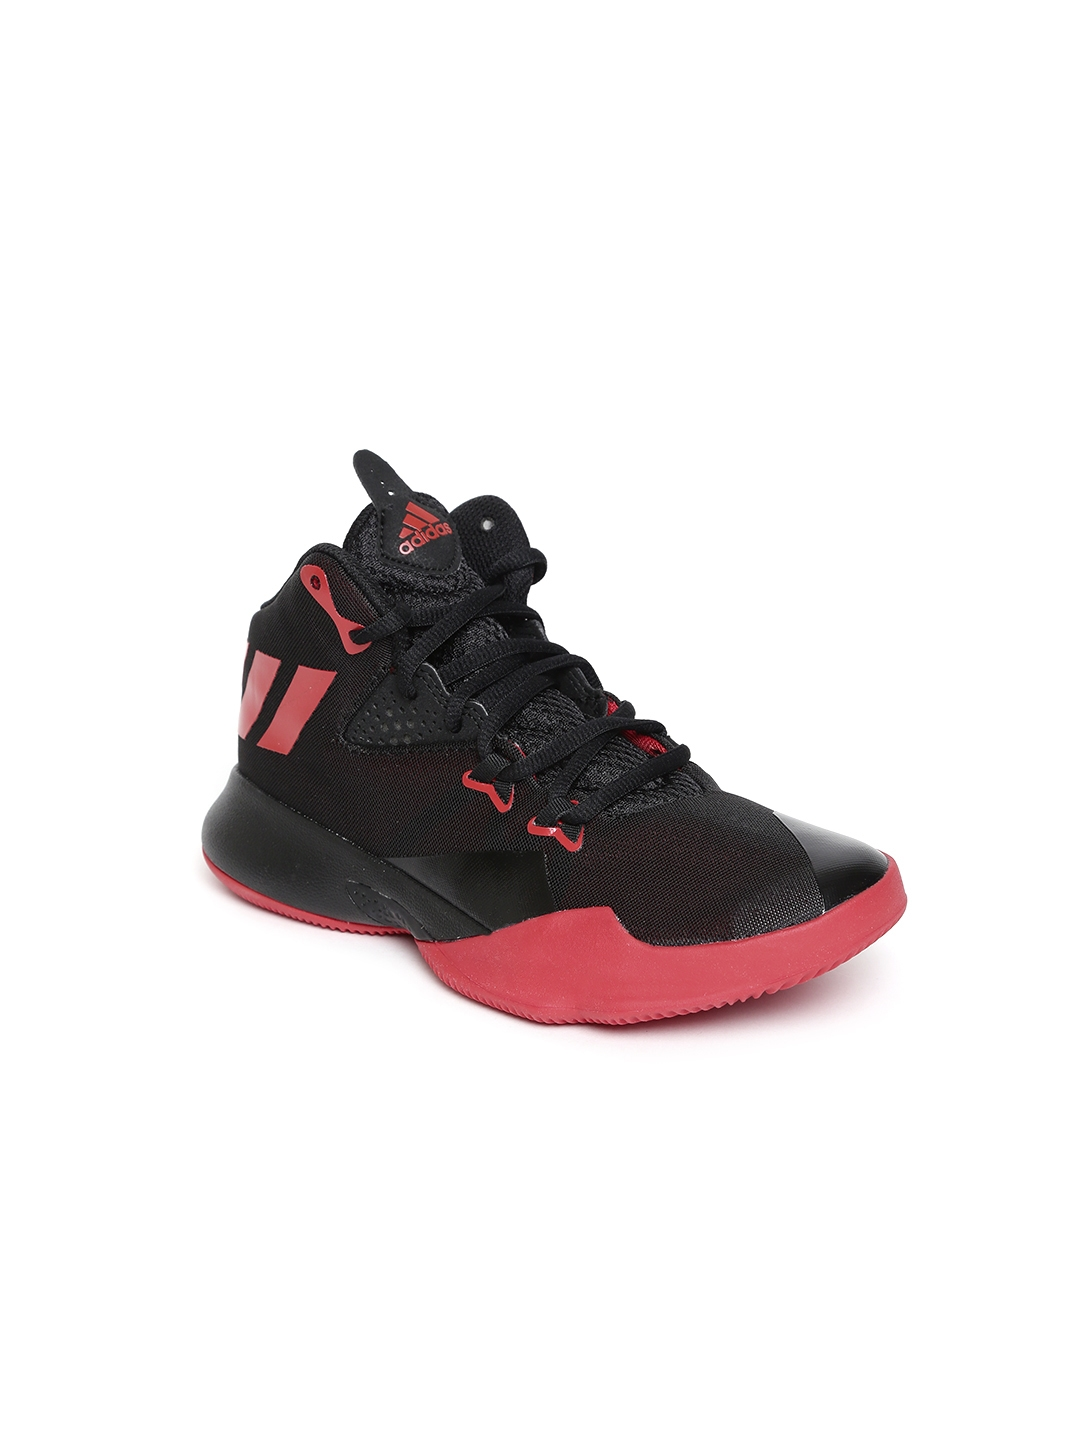 bae9266ed6fa 11502191947693-Adidas-Unisex-Black-Textile-Mid-Top-Basketball-Shoes -6371502191947437-1.jpg